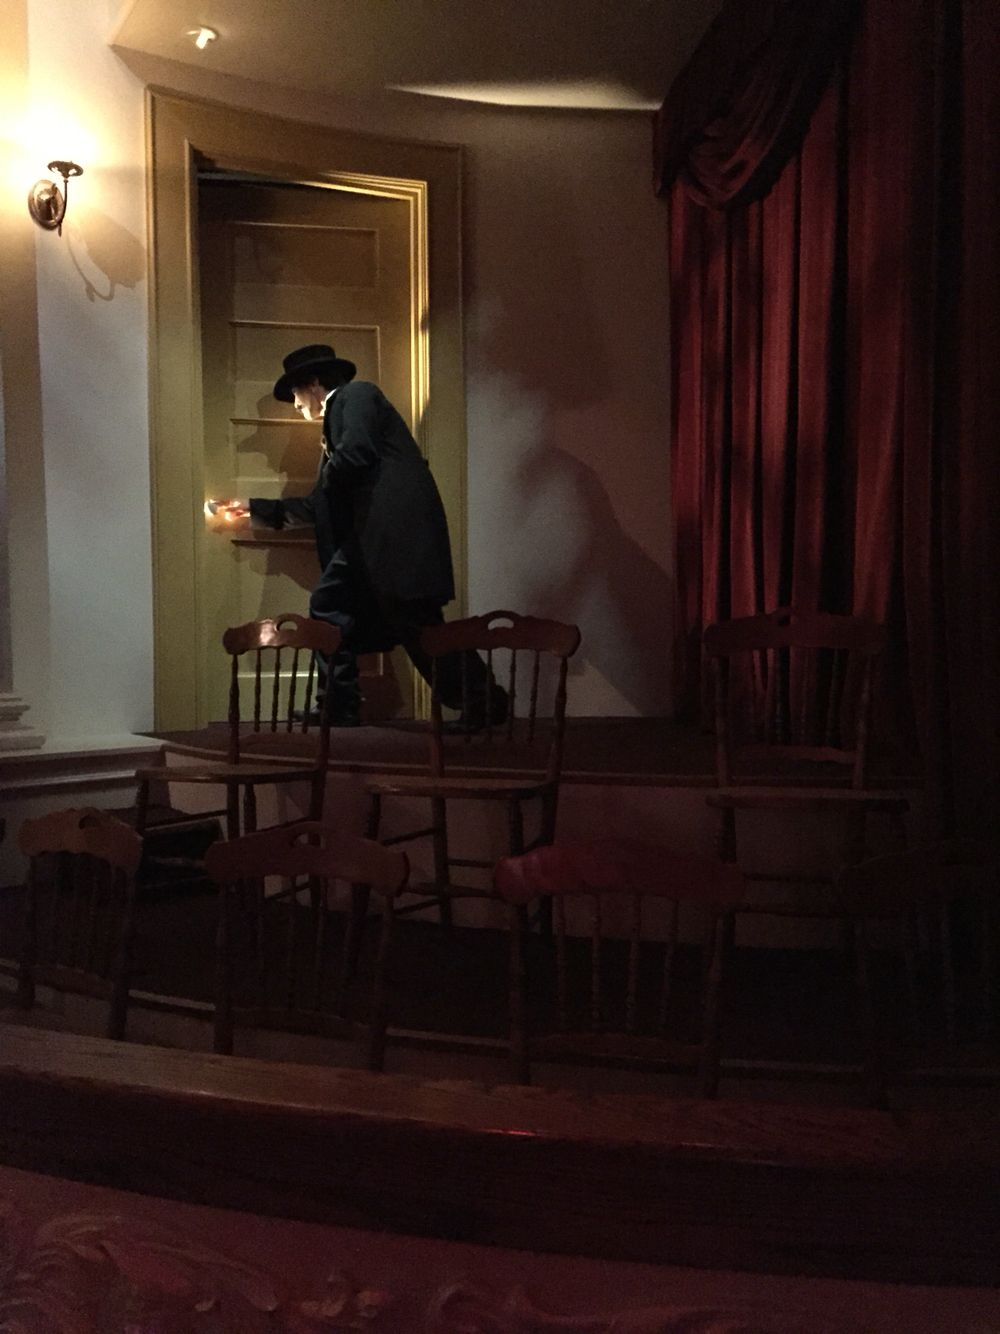 John Wilkes Booth sneaks into the Presidential Suite at Ford's Theatre